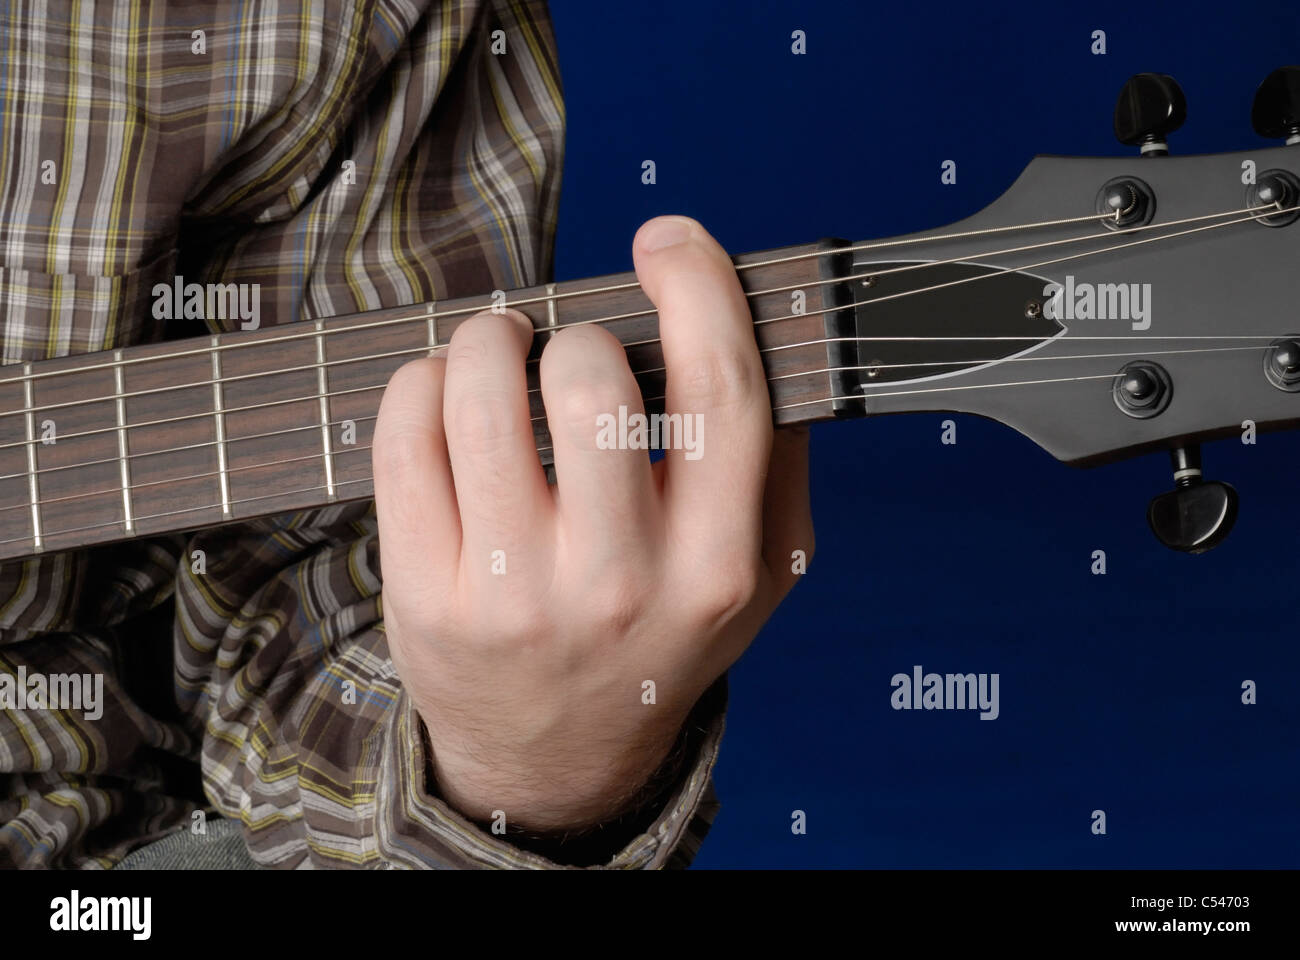 Mans Hand Demonstrating F Bar Chord On Guitar Stock Photo 37587315